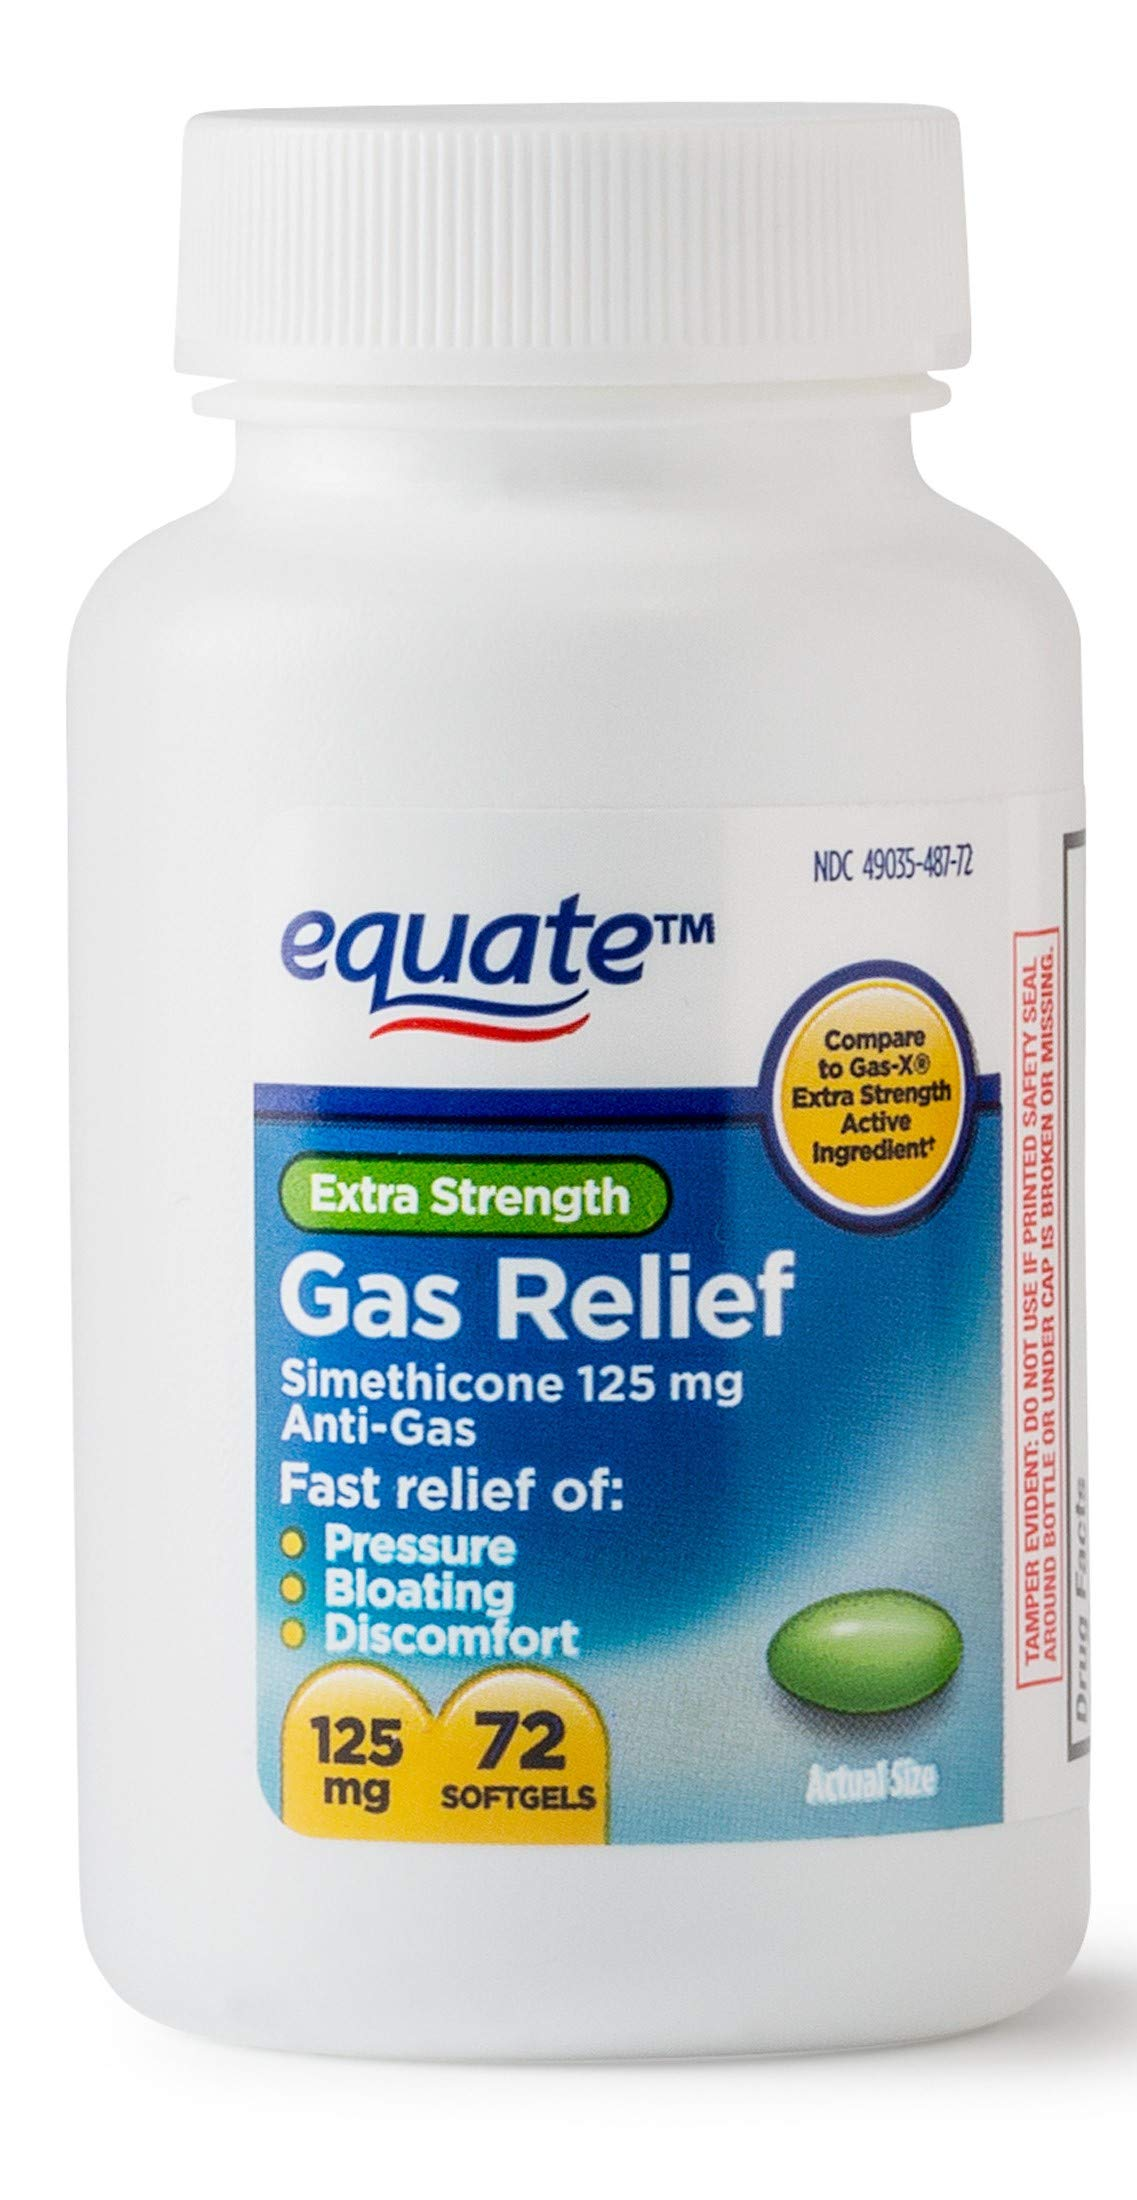 Equate Extra Strength Gas Relief 125 mg 72 Softgels (Twin Pack) by Equate